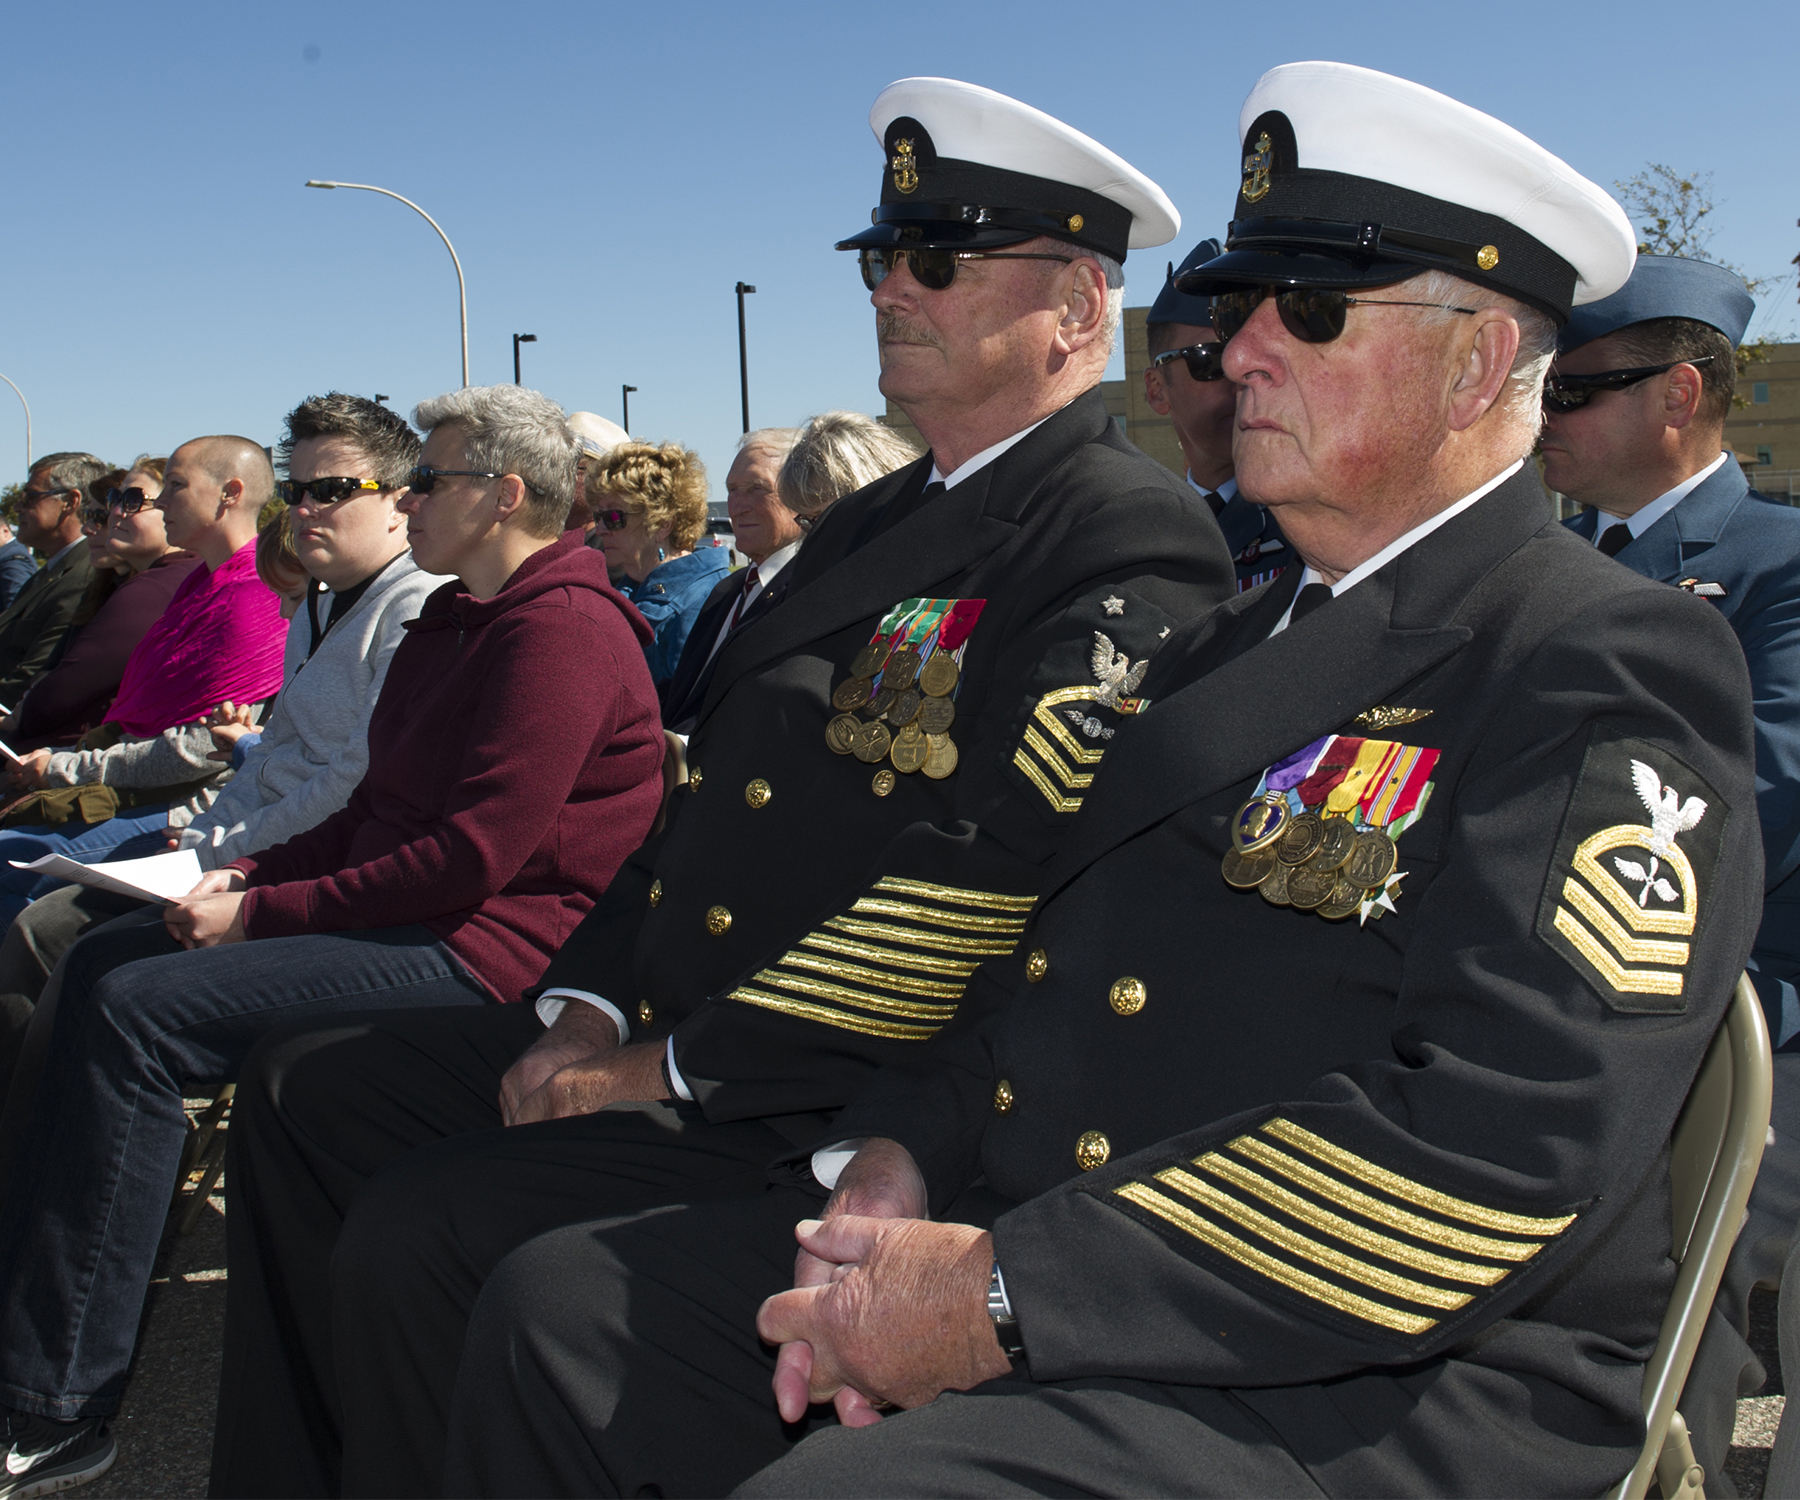 On October 1, 2017, United States Navy Reserves Chief Petty Offer Dan Sullivan (foreground) and United States Navy Master Chief Petty Officer Herb Parsons (left) attend the 2017 VPI memorial service held at 14 Wing Greenwood, Nova Scotia. PHOTO: Master Corporal Rory Wilson, GD14-2017-0602-007